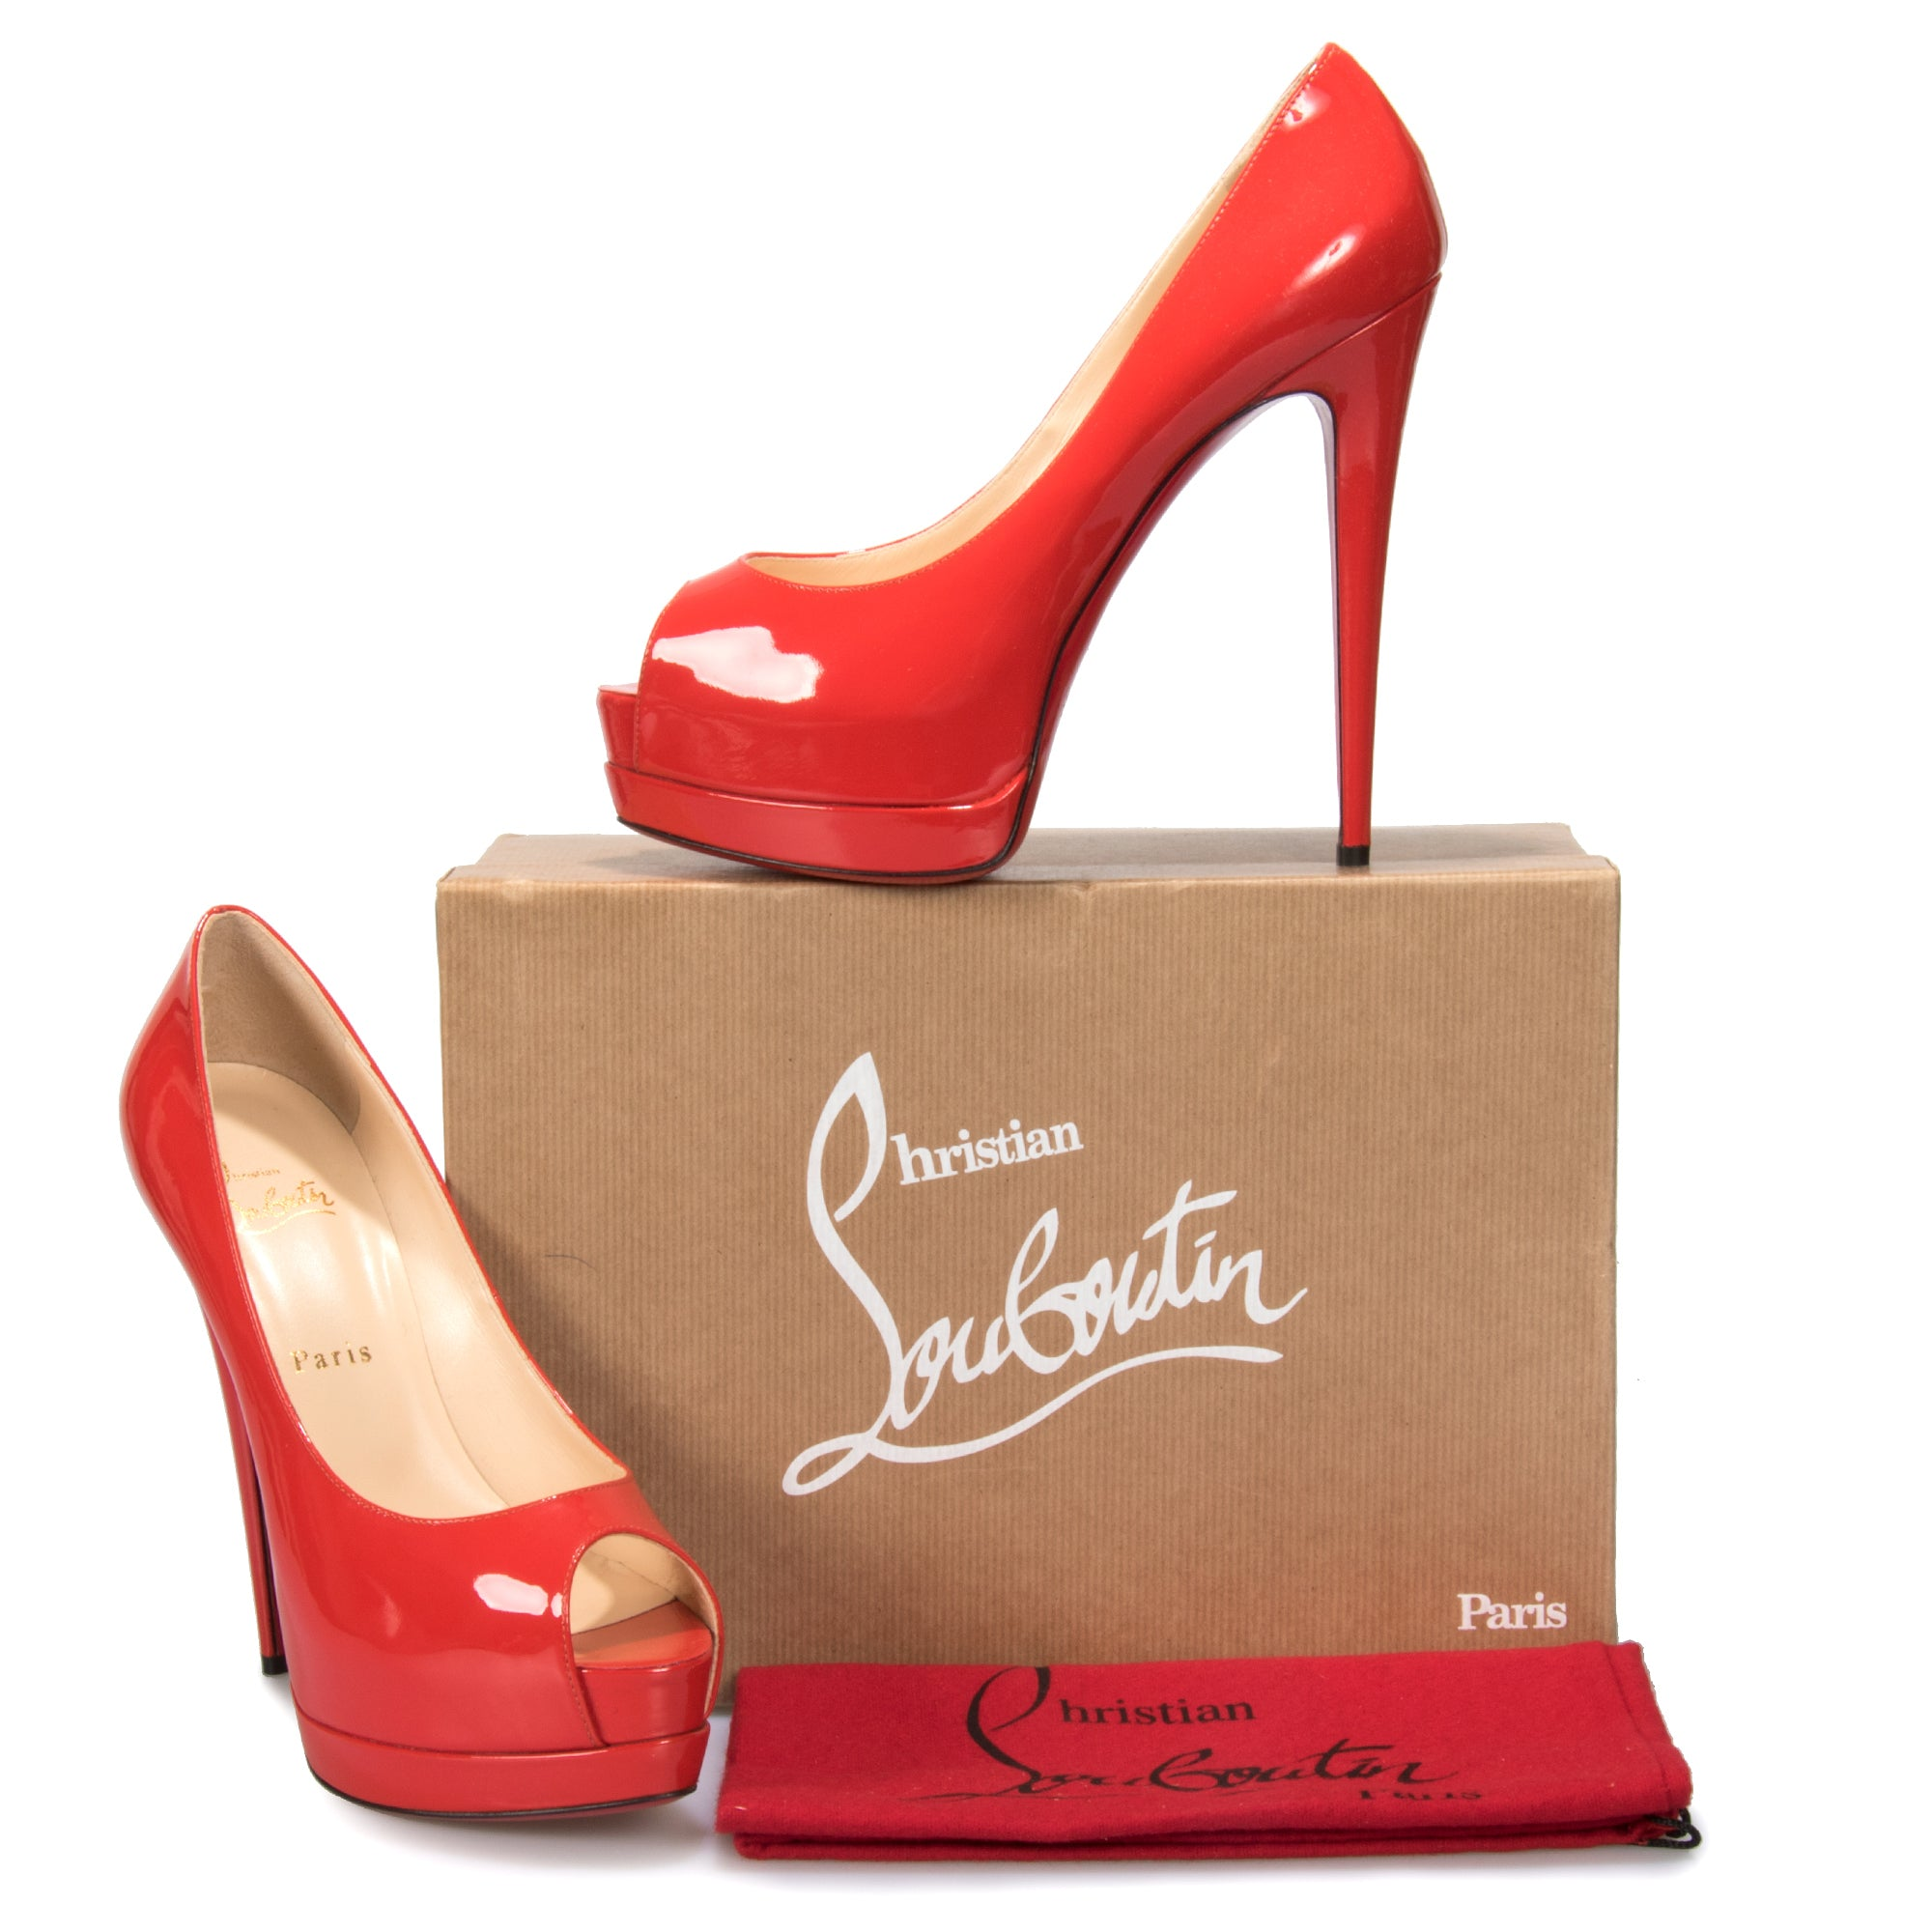 Christian Louboutin Palais Royal Flamenco Patent Leather 120mm Platform Pump